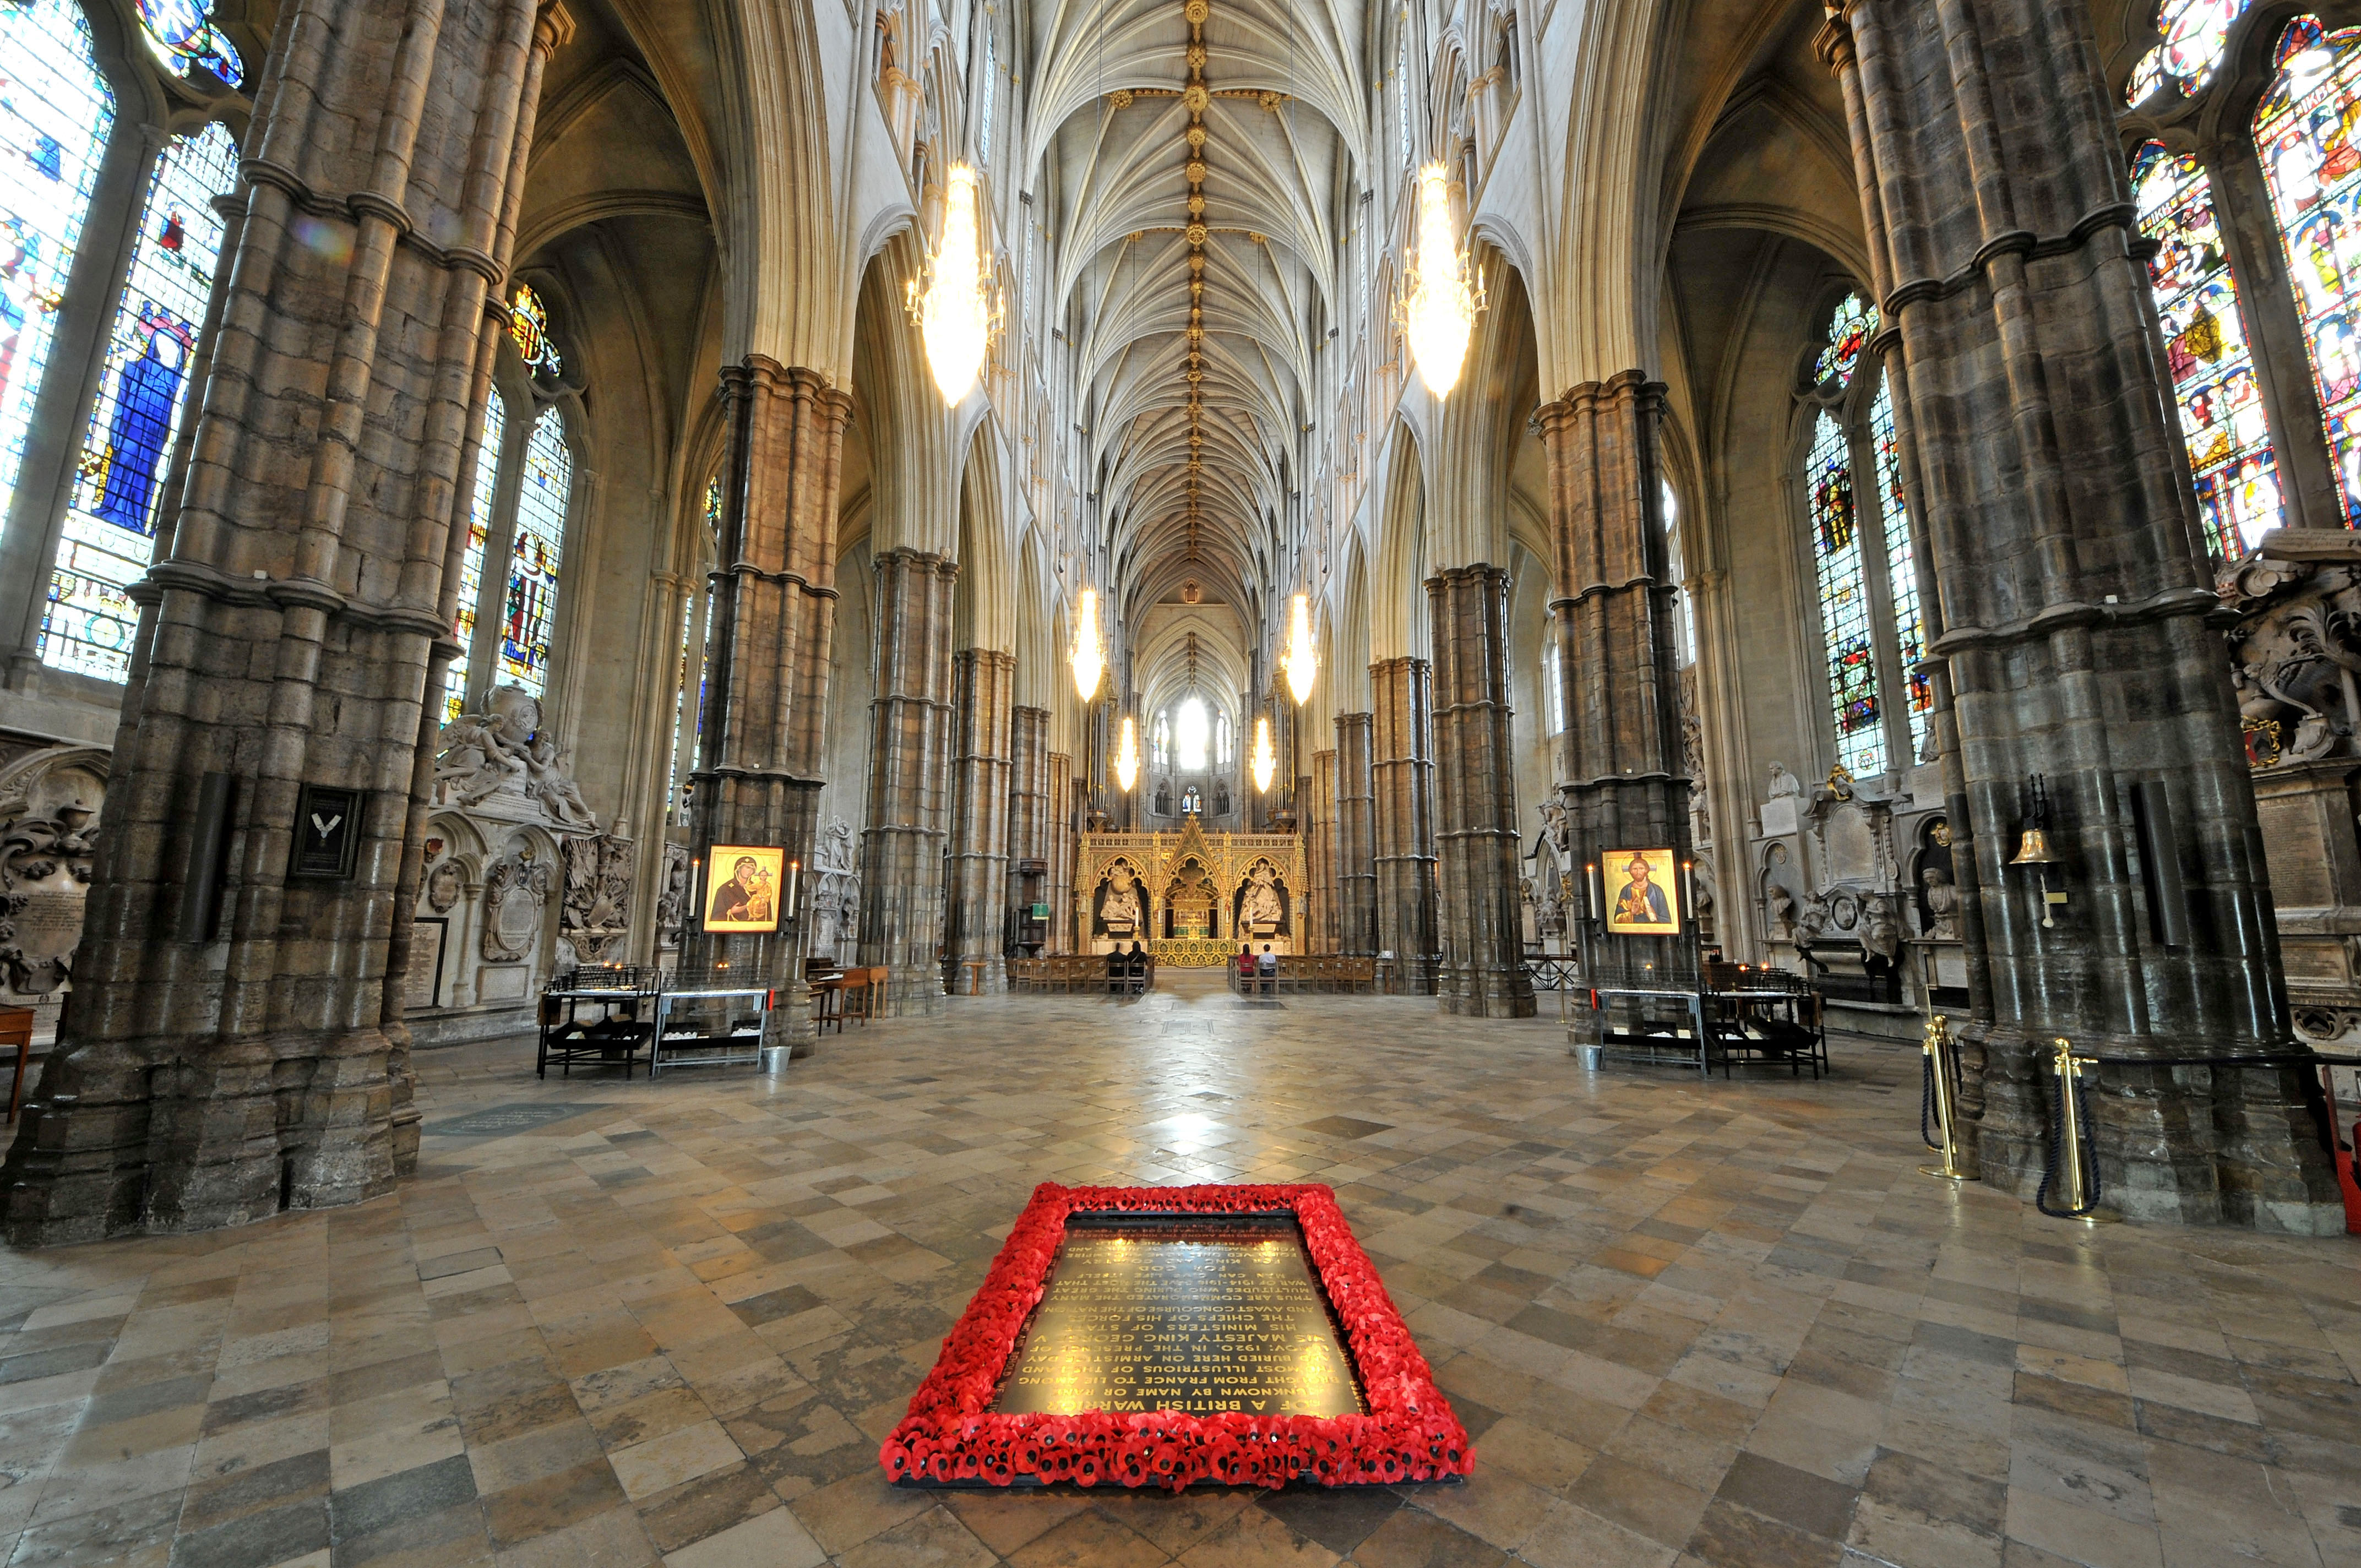 The Grave of the Unknown Warrior in the Nave